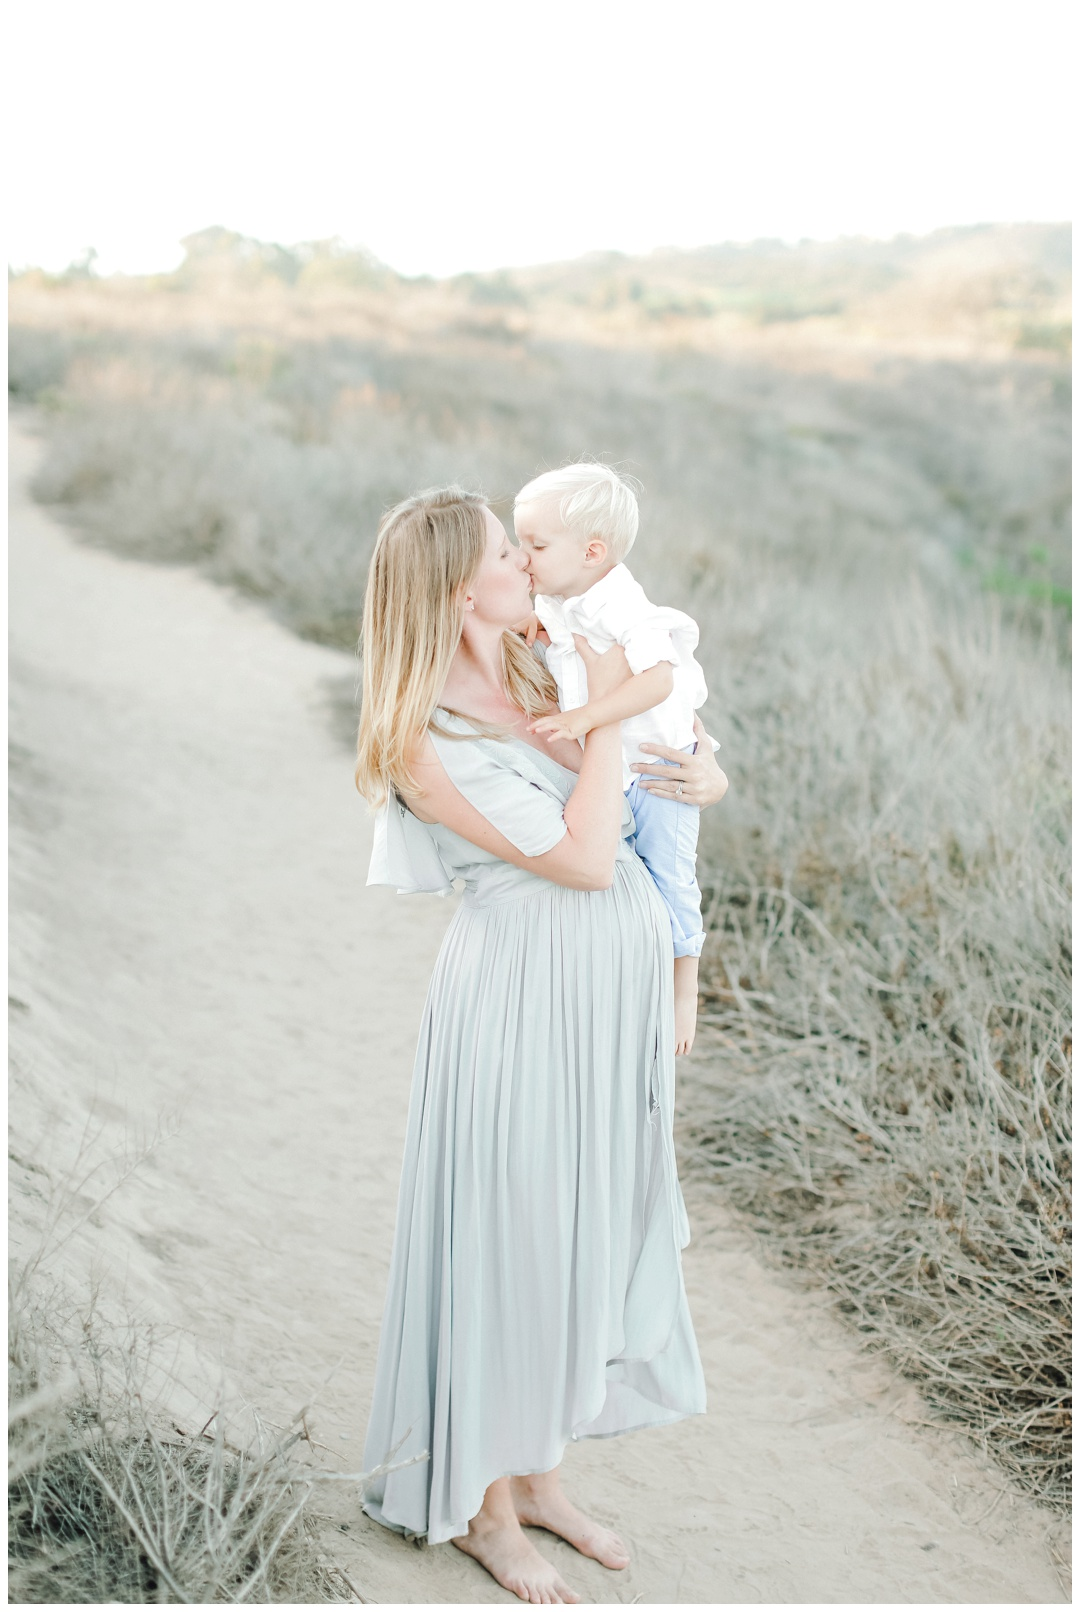 The_Epler's_Family_Newport_Beach_Family_Photographer_Orange_County_Family_Photography_Cori_Kleckner_Photography_Orange_County_Beach_Photographer_Family_Photos_Session_Crystal_Cove_Session__1447.jpg